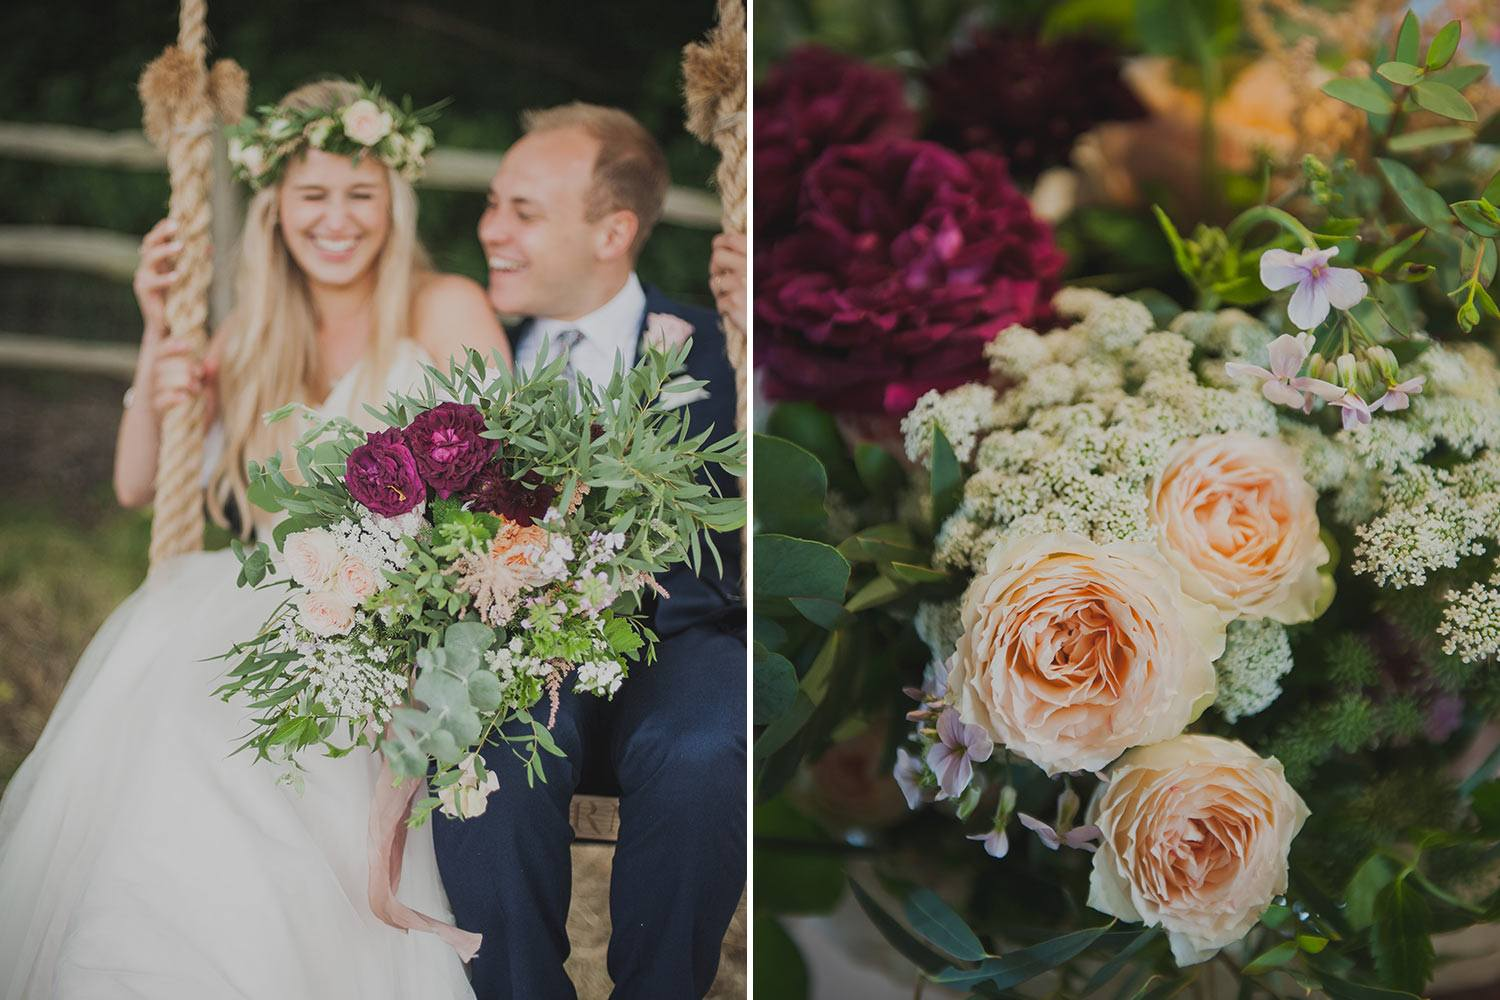 Bride and groom on rope swing with flower crown and scented rose bridal bouquet